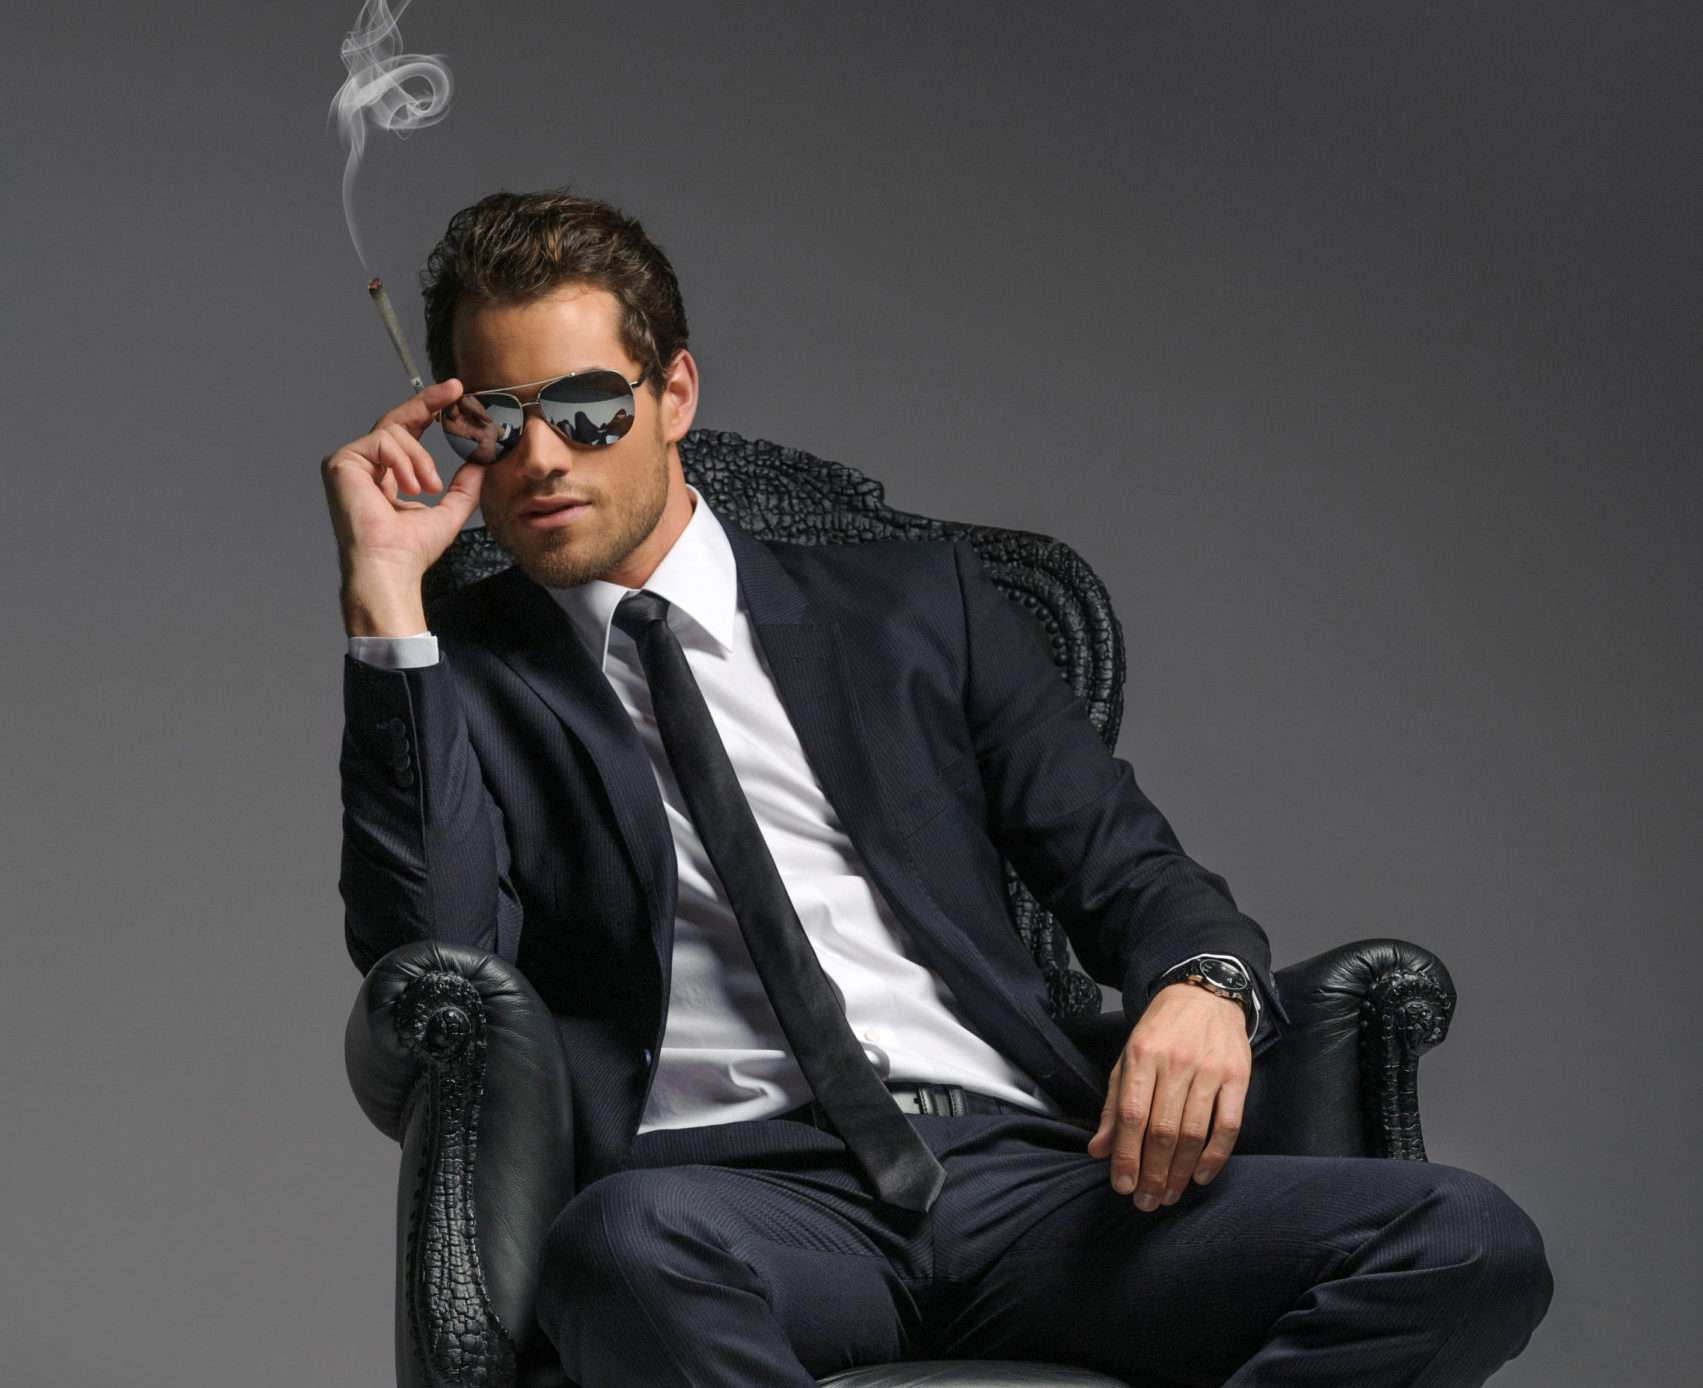 Best Hemp Flower Products Learn How to Smoke at Work